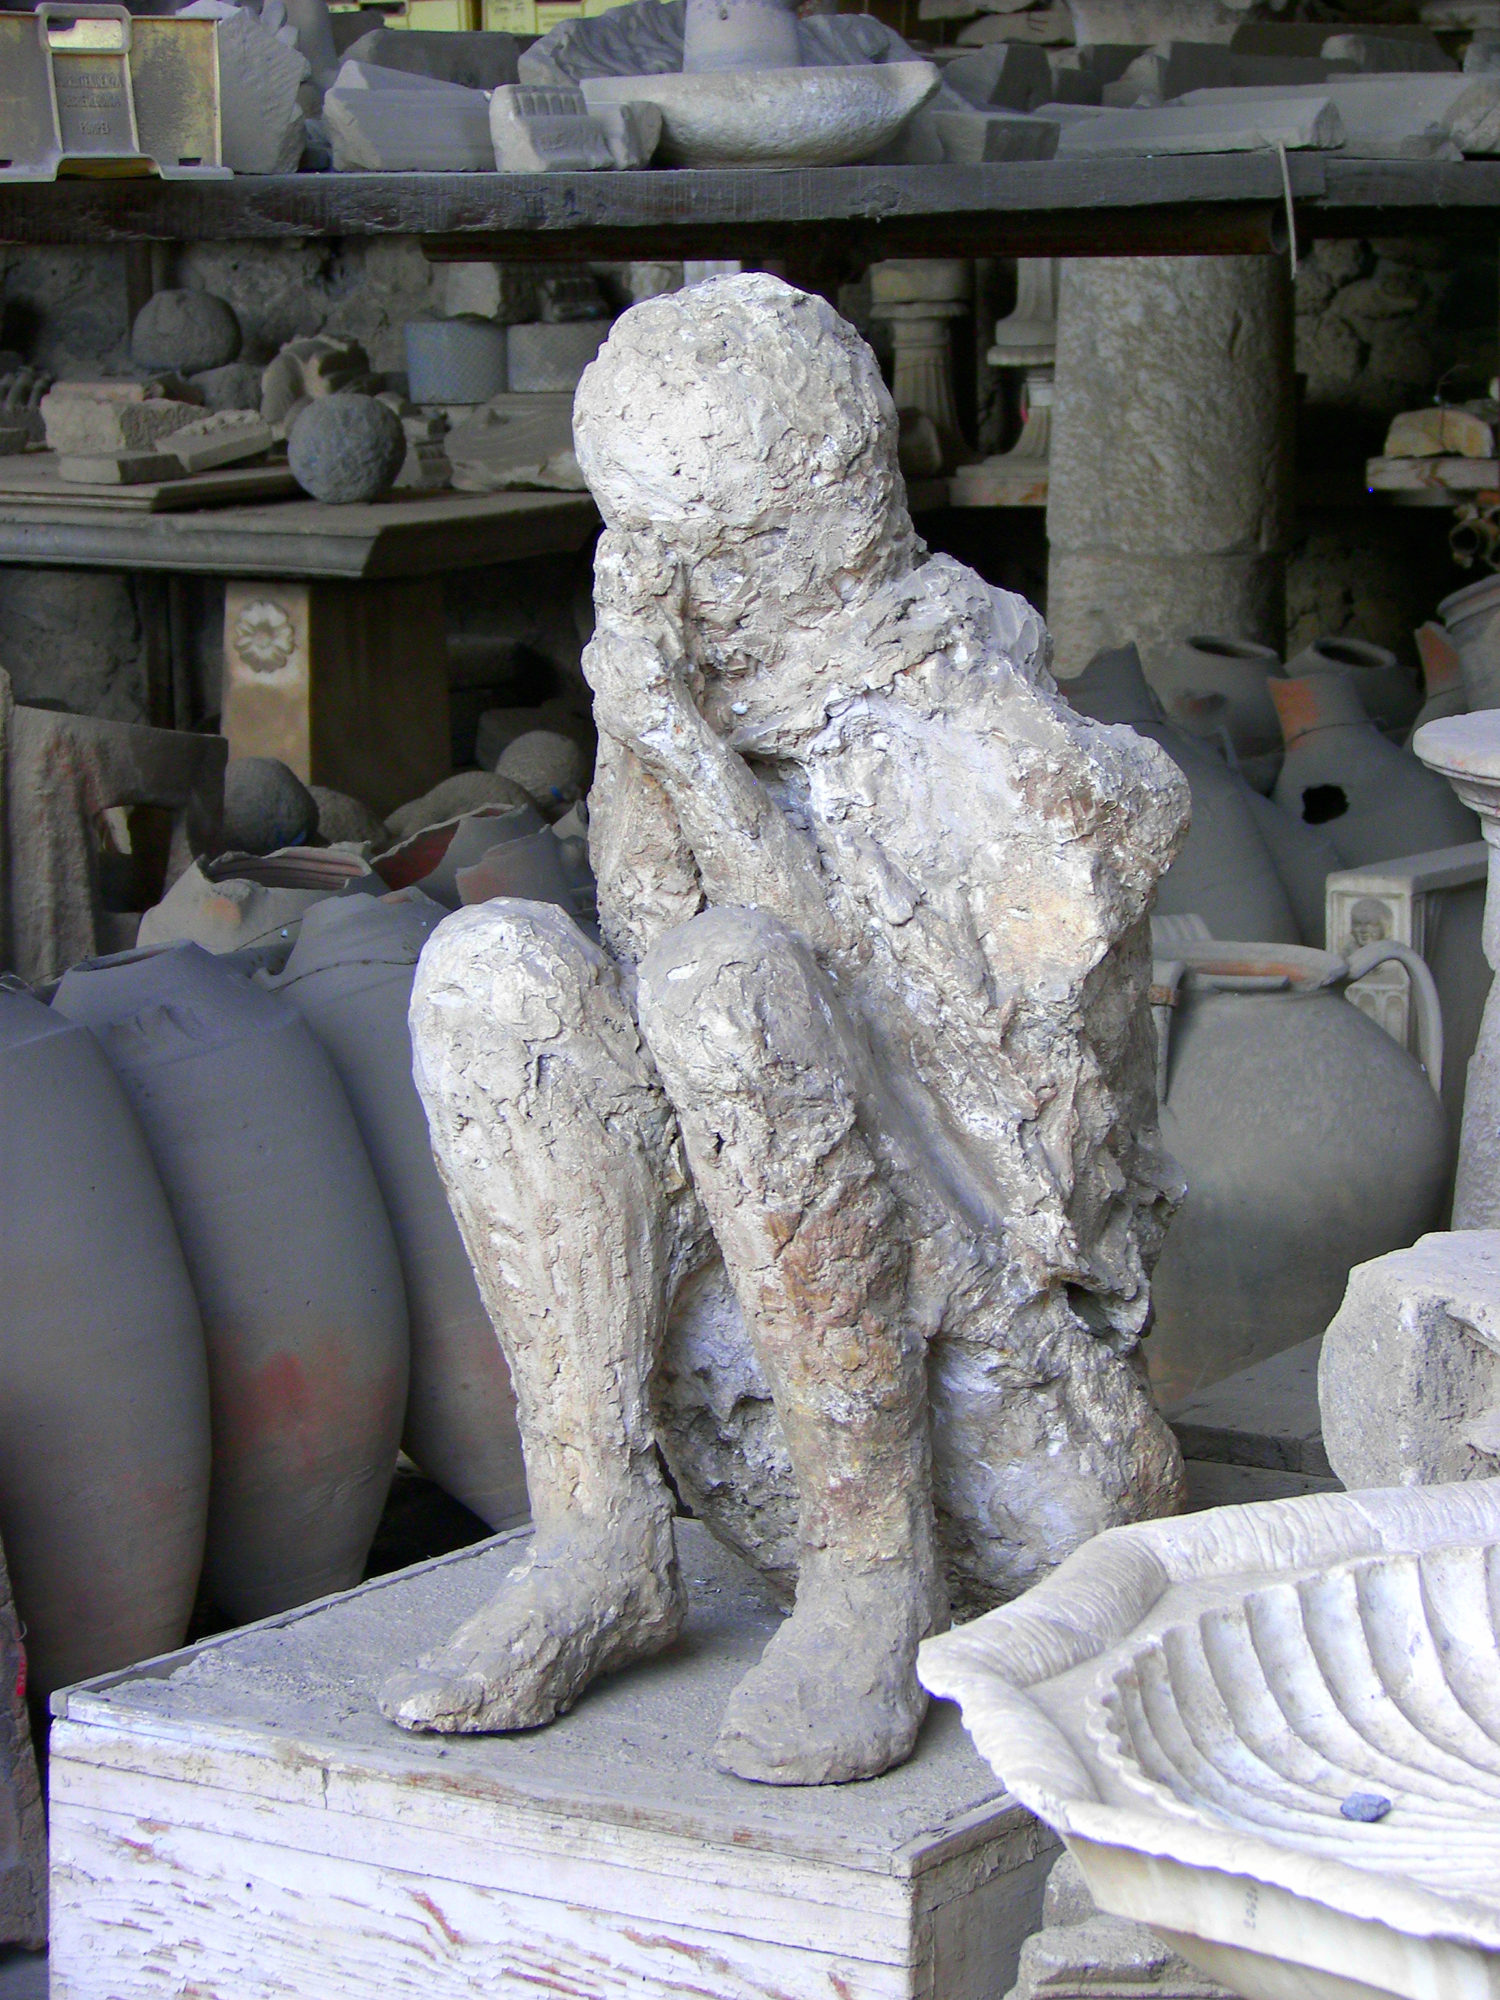 Plaster cast of a deceased person in the forum granary market in Pompeii